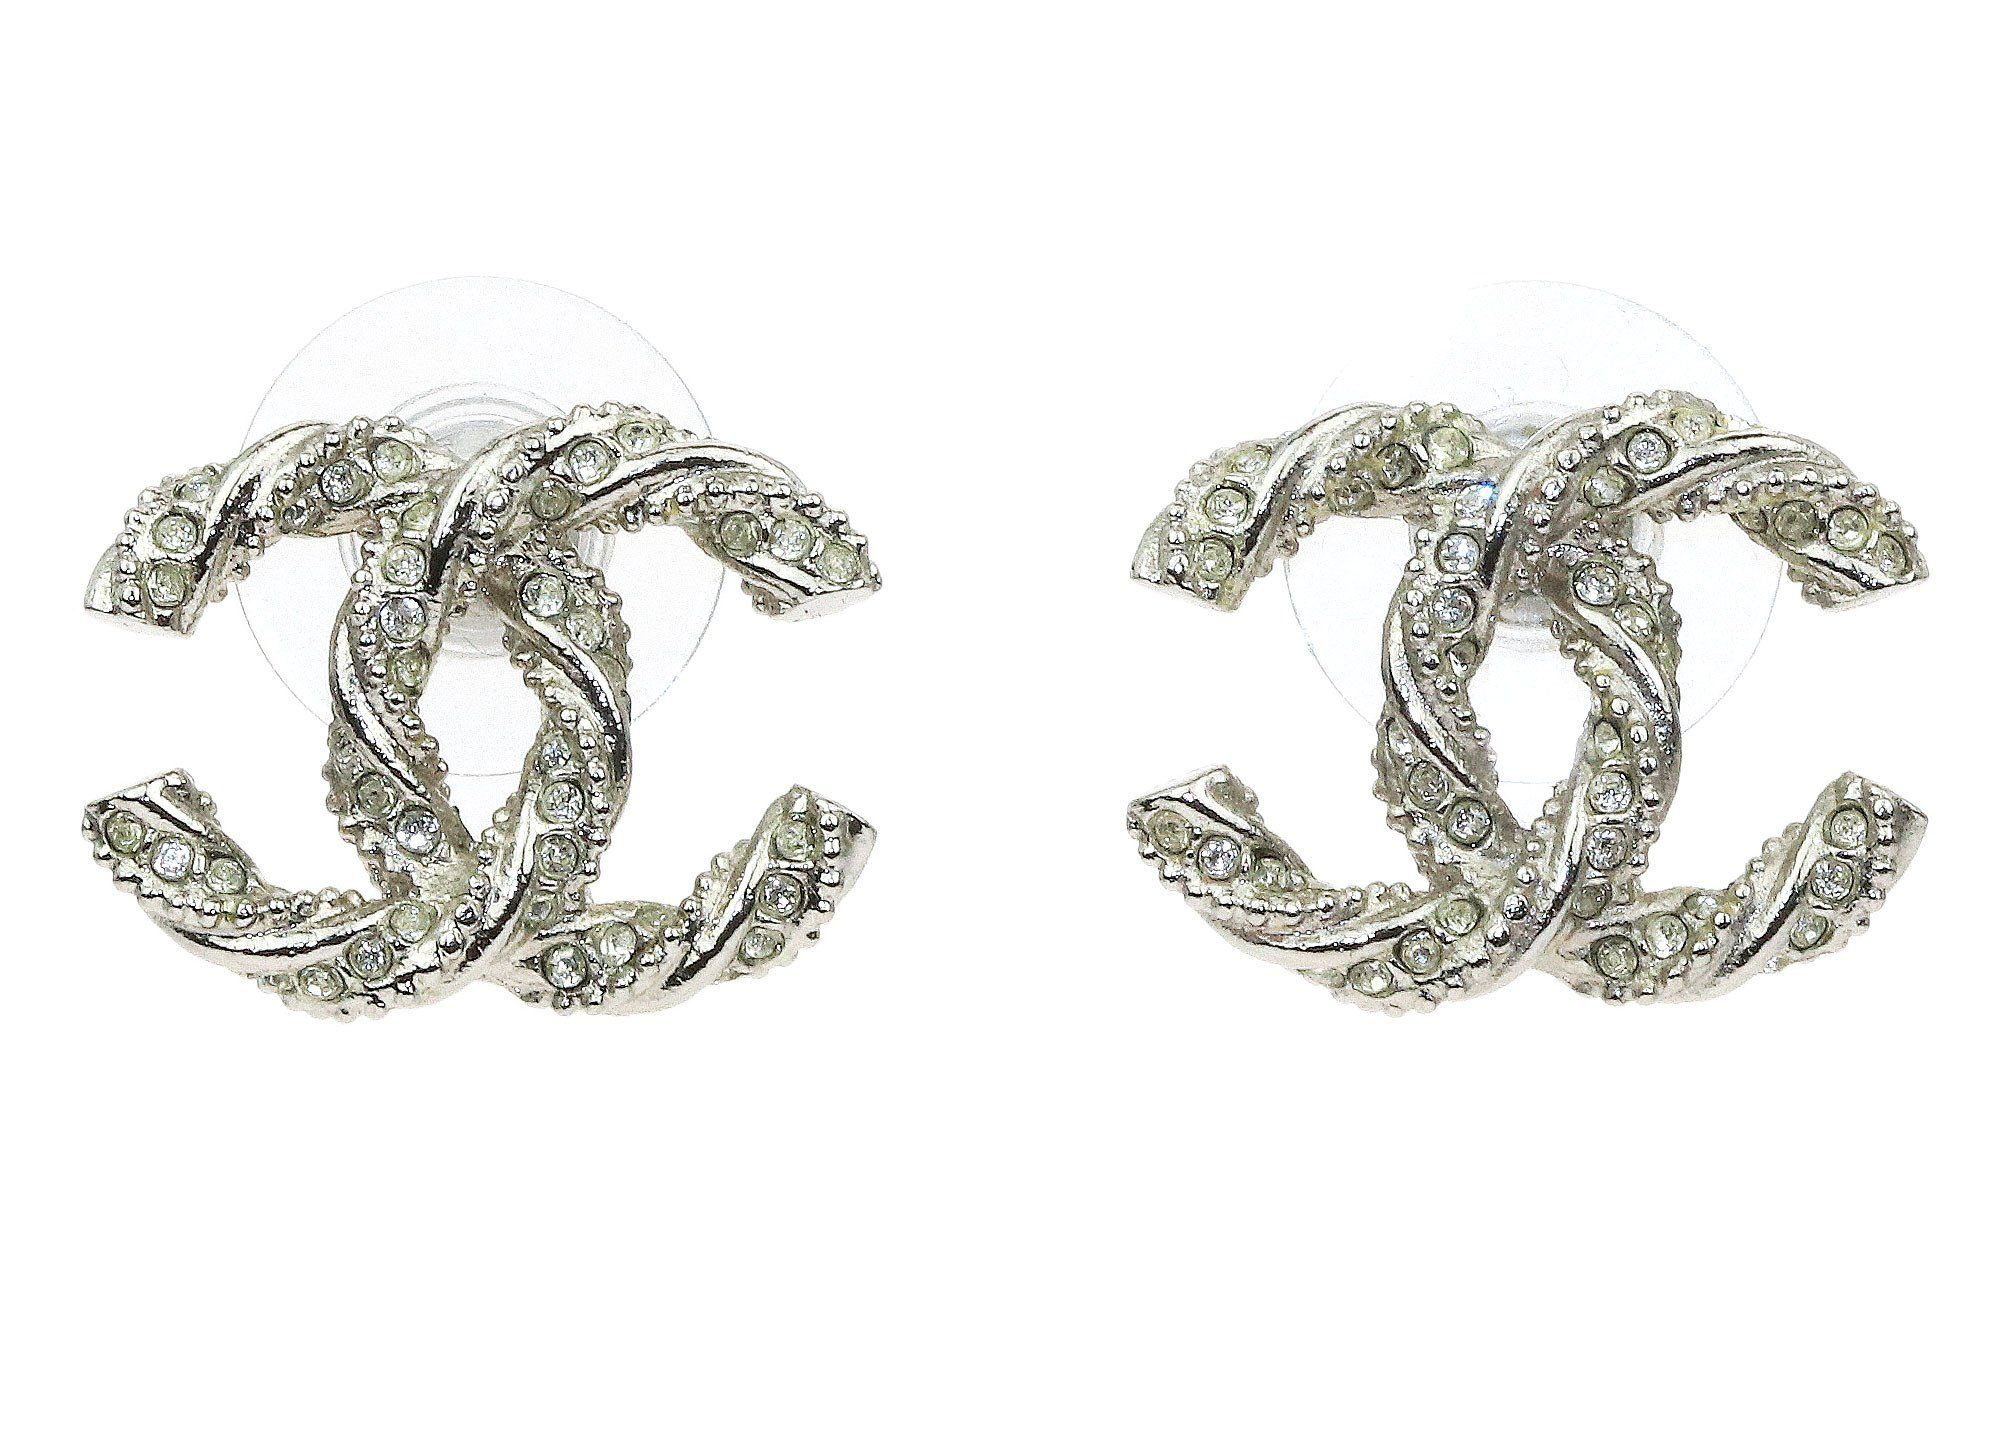 8bbc24b63 Chanel Silver Twist Crystal CC Logo Stud Earrings | My Style ...